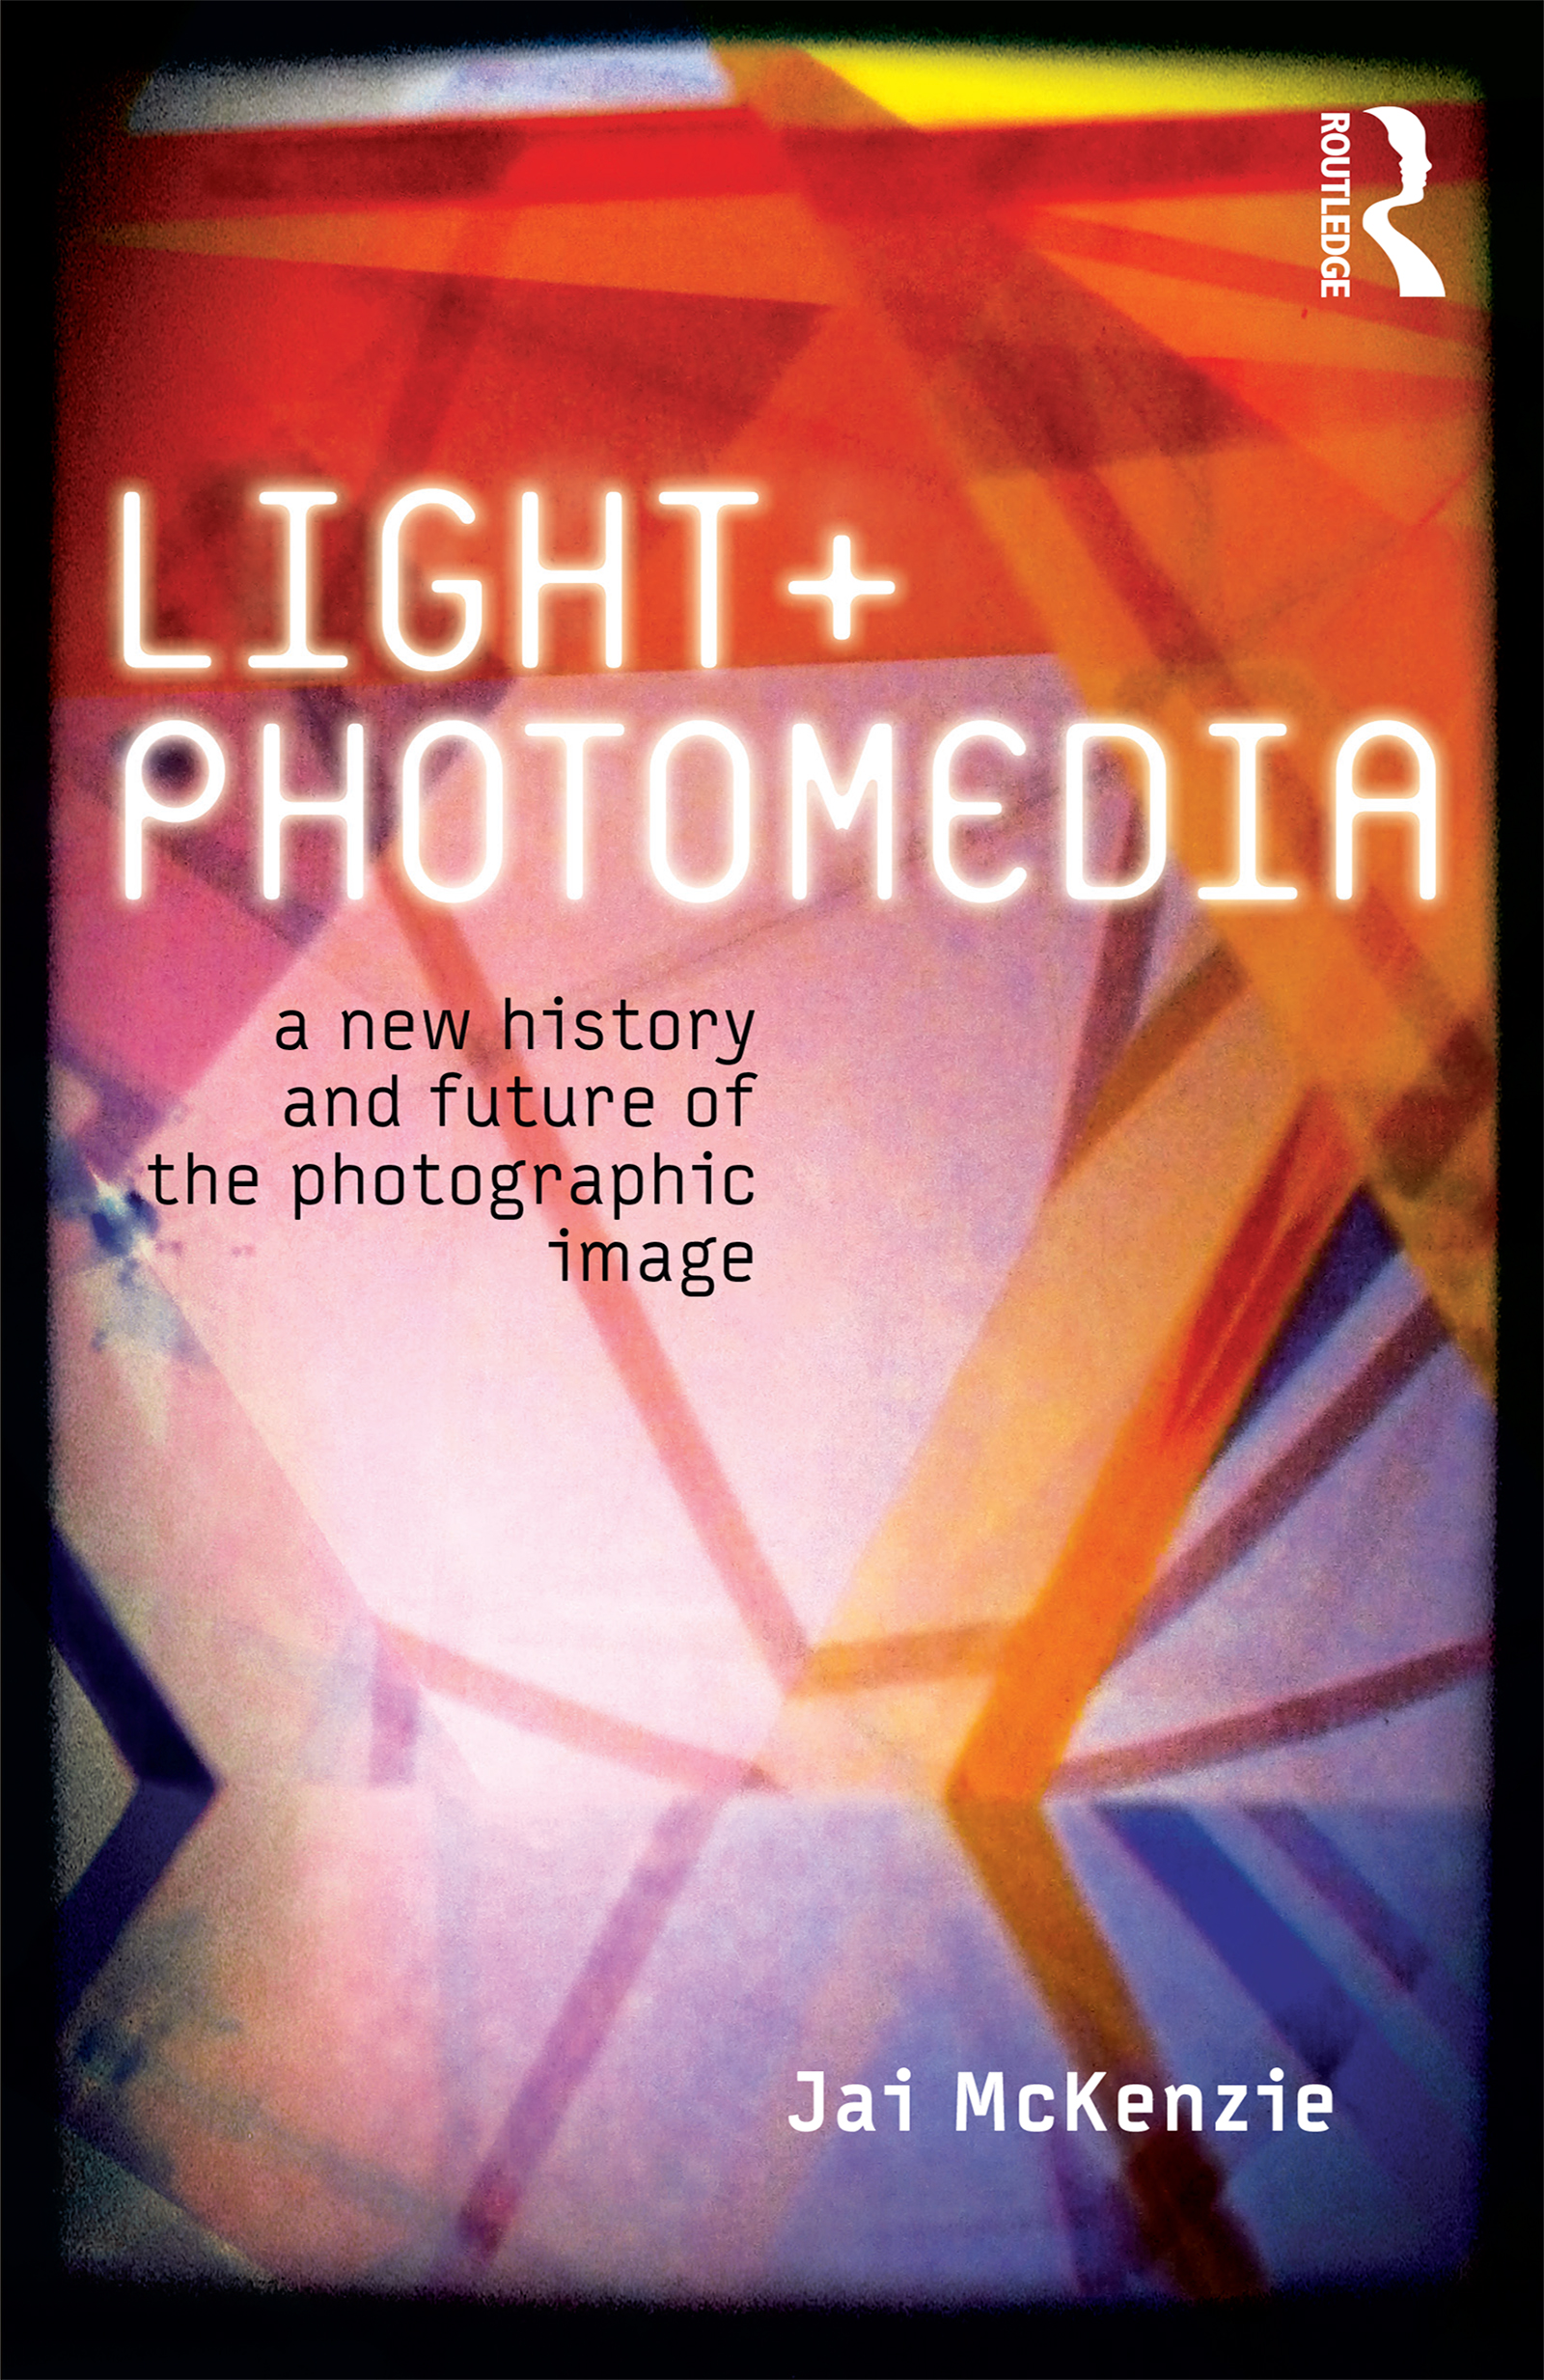 Light + Photomedia